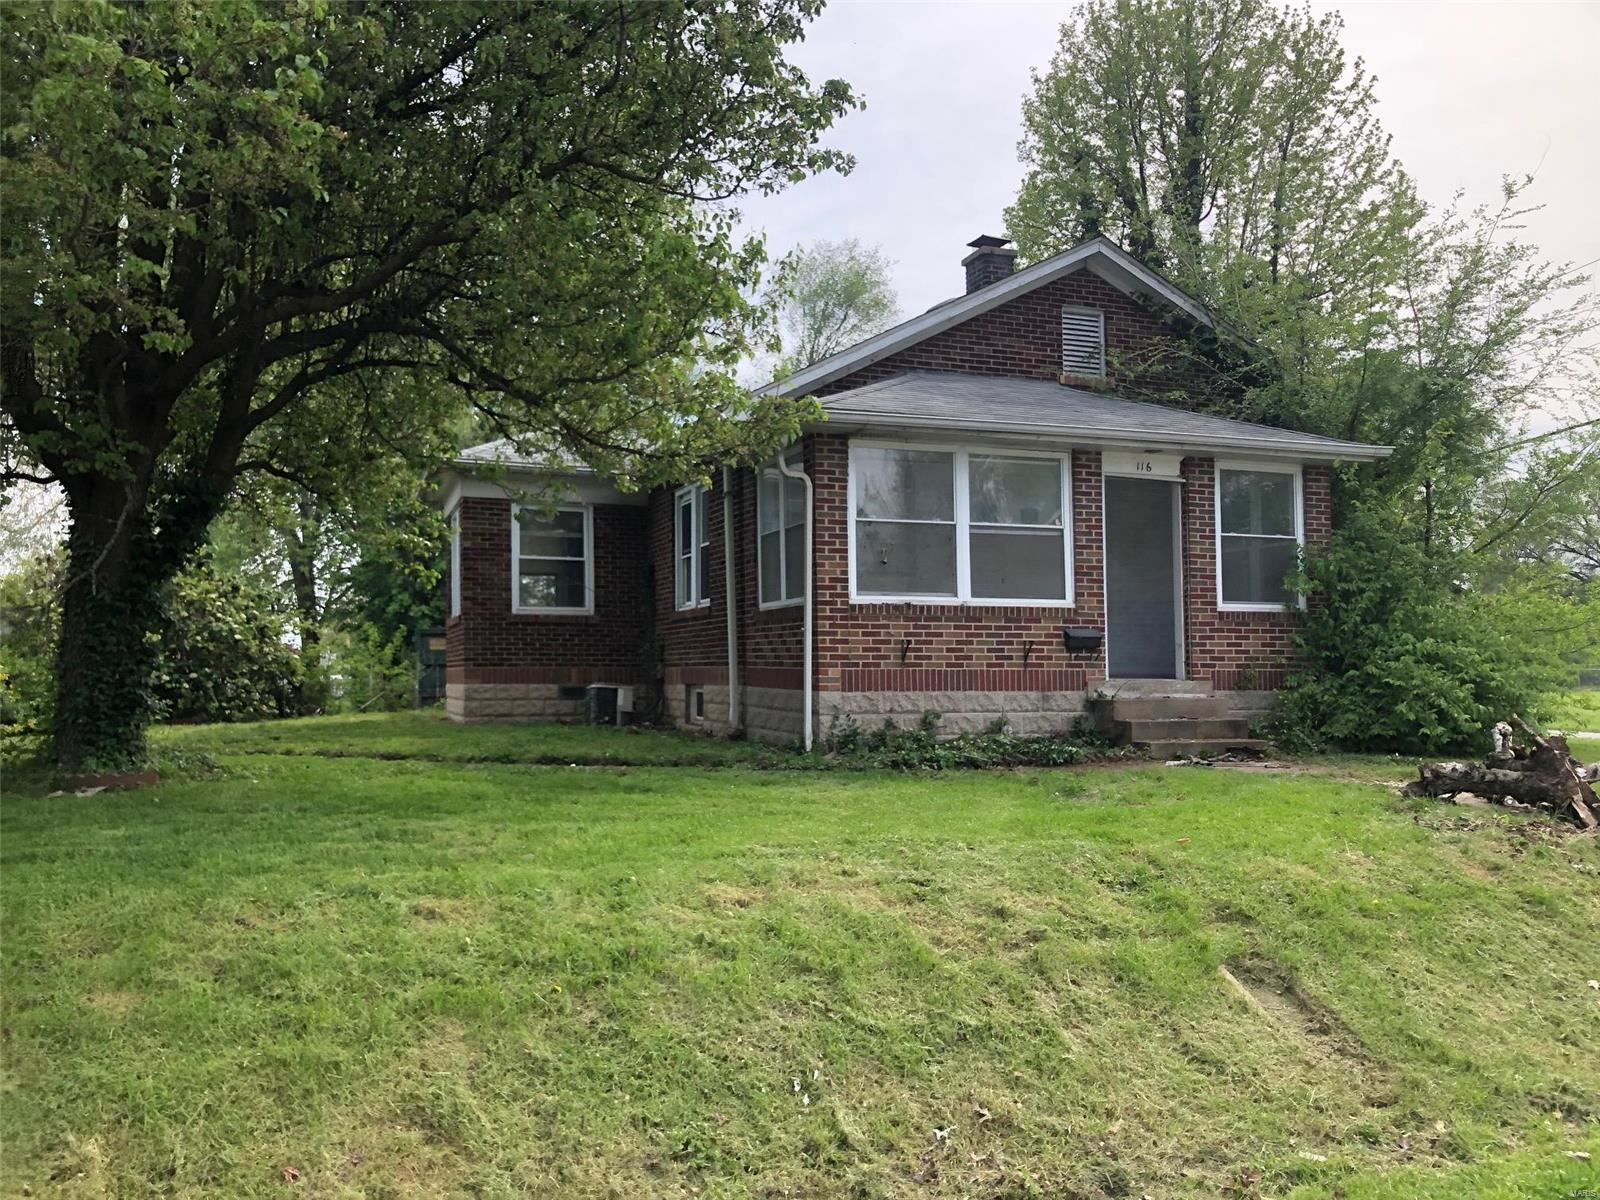 116 West 2nd, Cahokia, IL 62206 - MLS#: 20026614